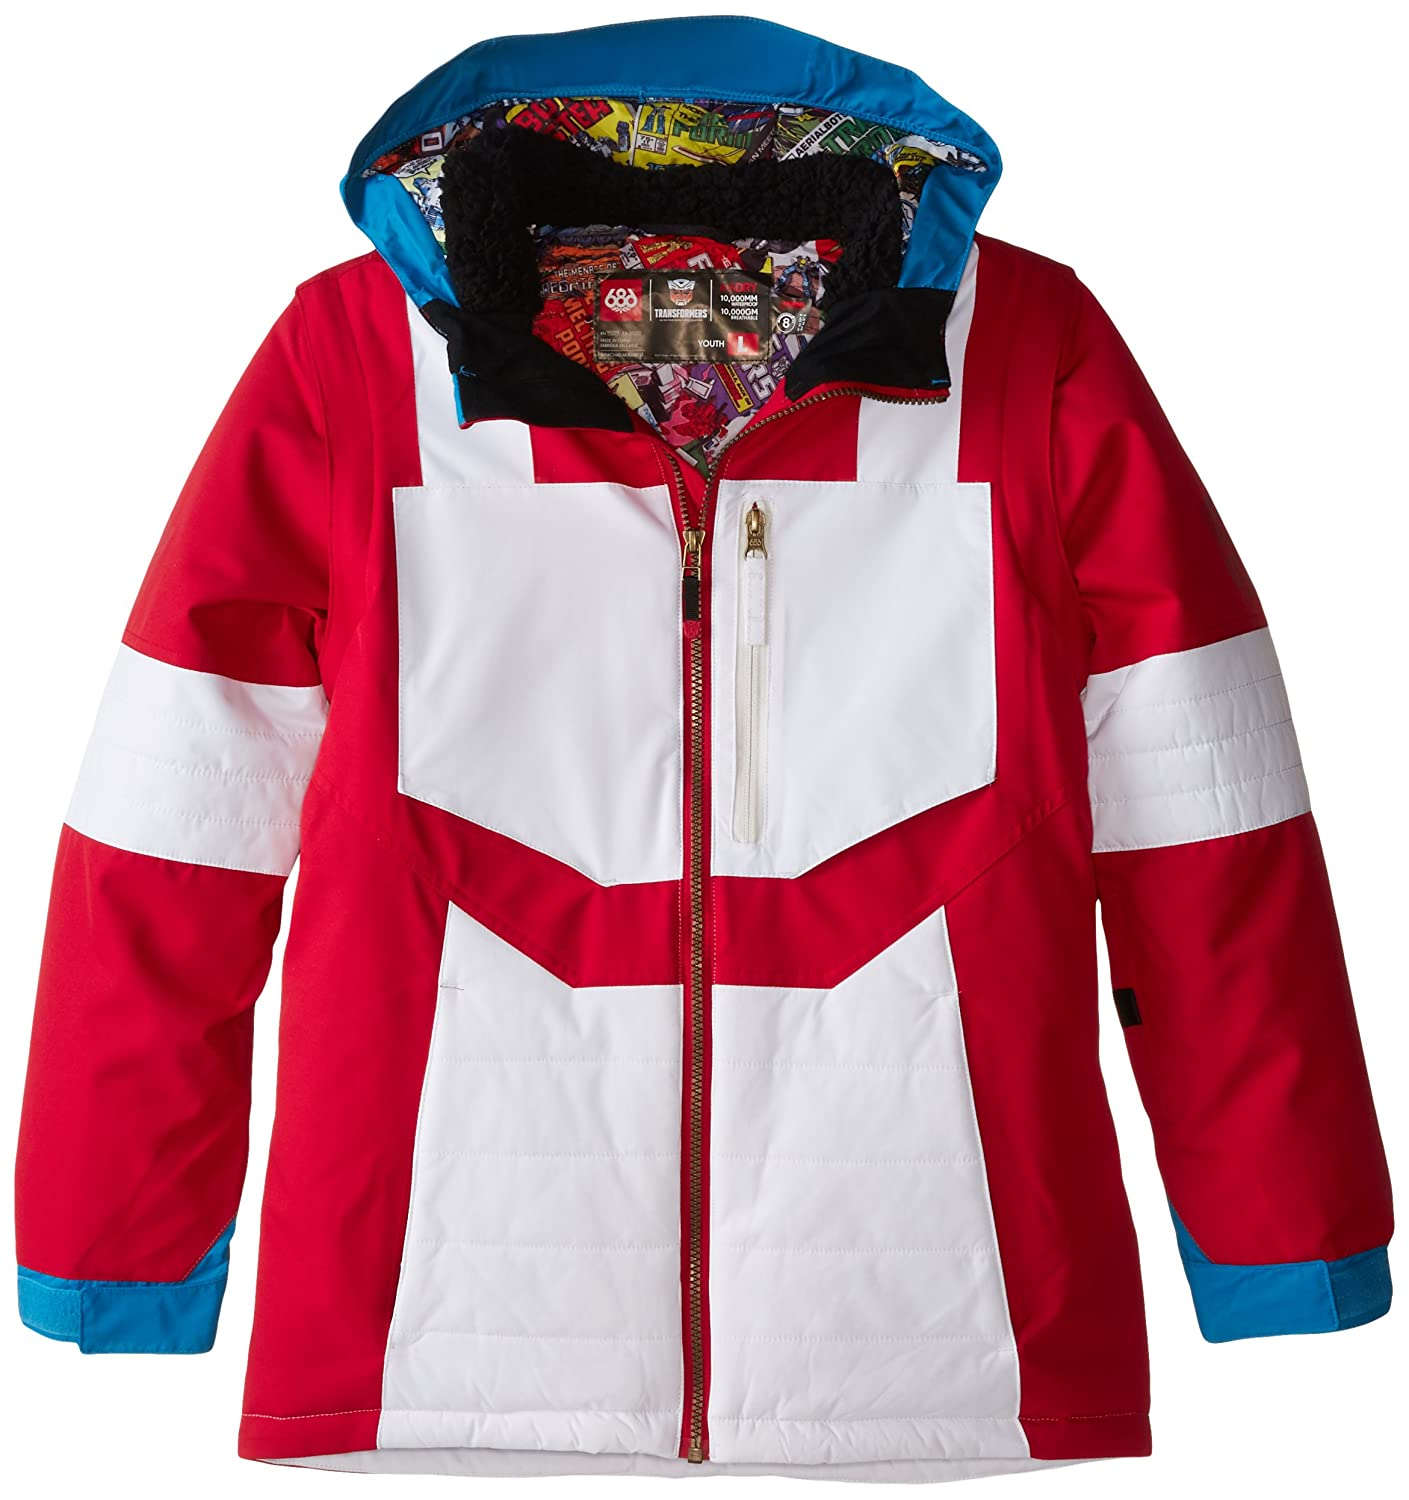 Image of 686 Boy's Transformer Autobot Jacket Jackets